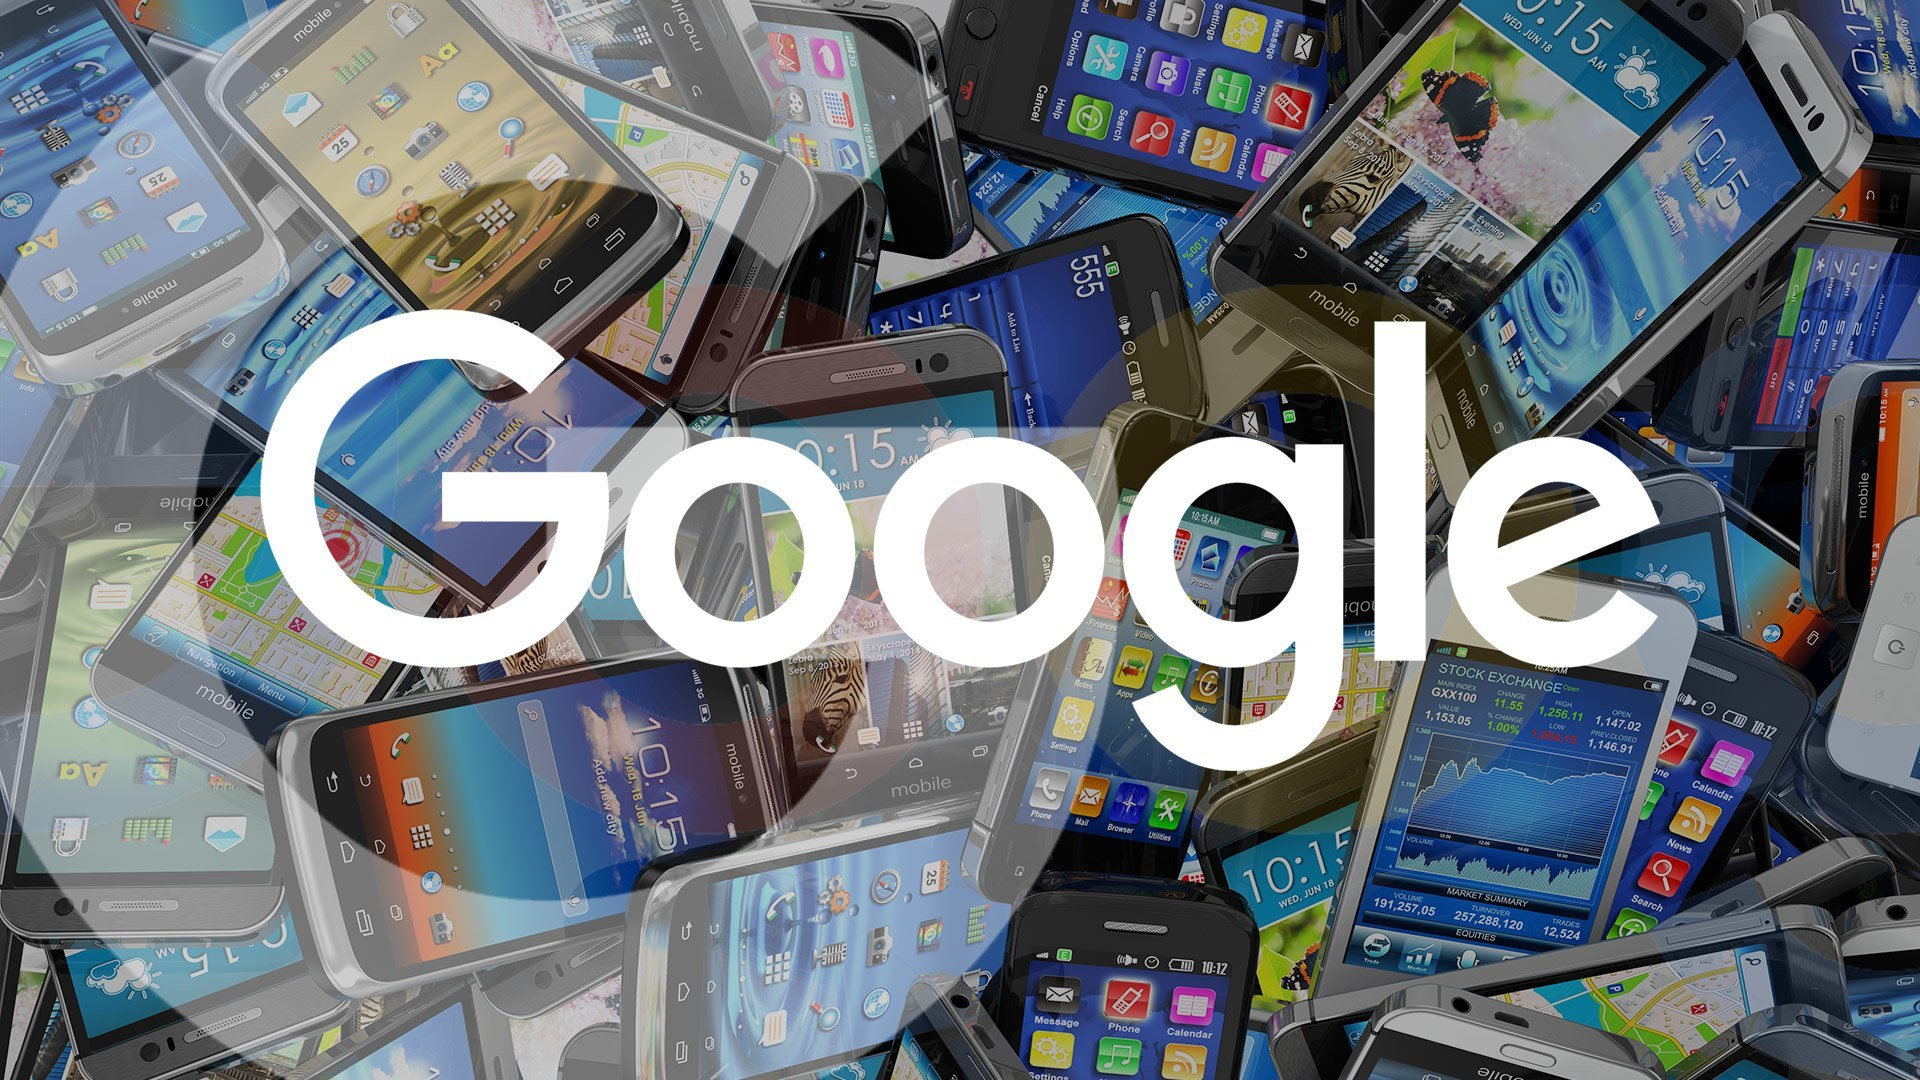 Google AMP Helping the Web Move Faster 2015 tech images